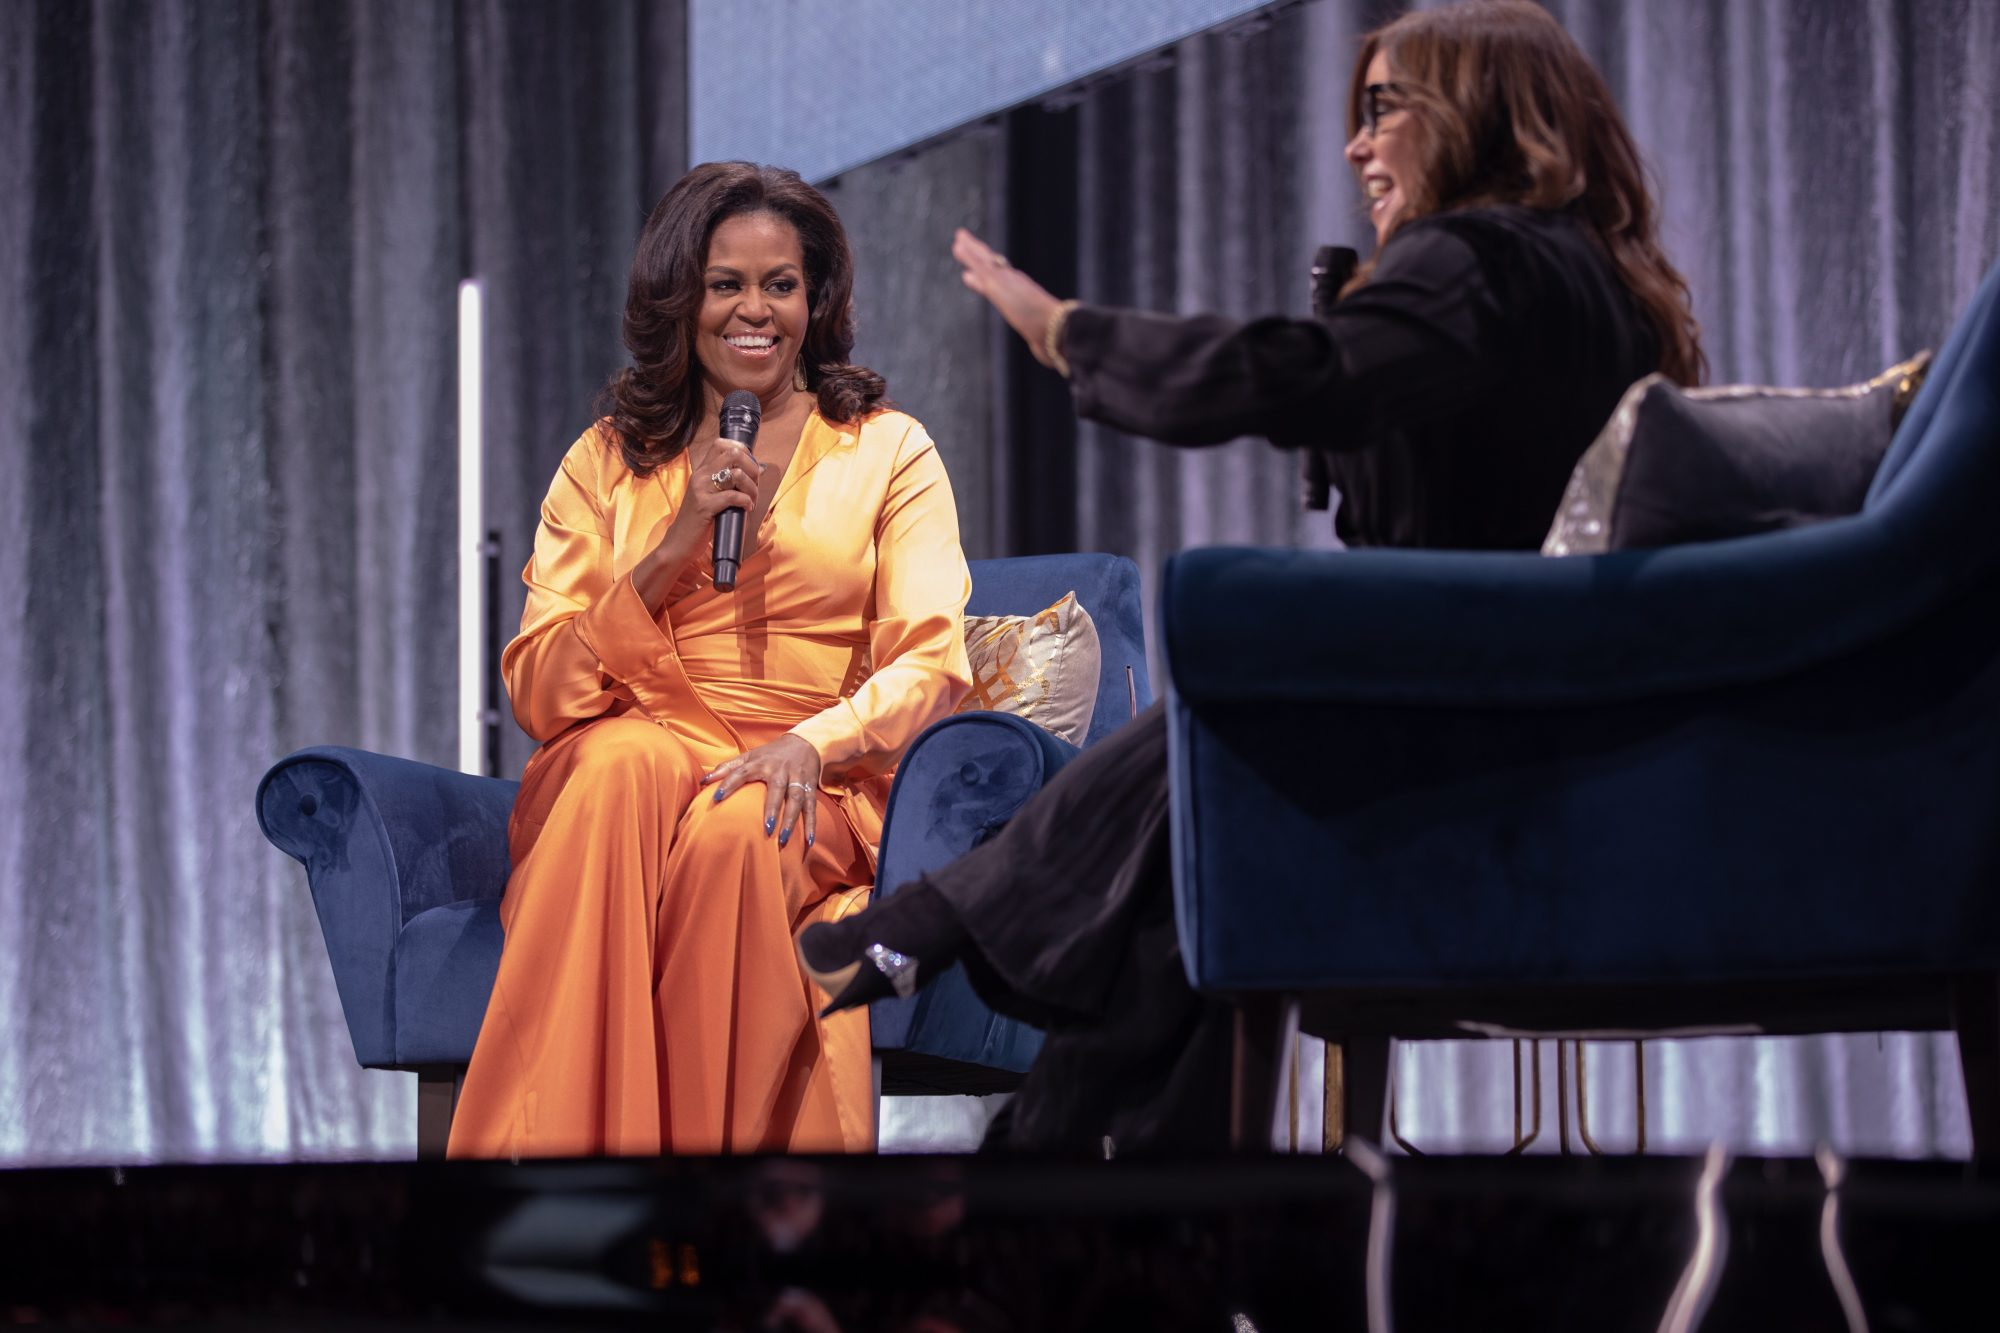 Michelle Obama and Rachael Ray talk food and family in Austin